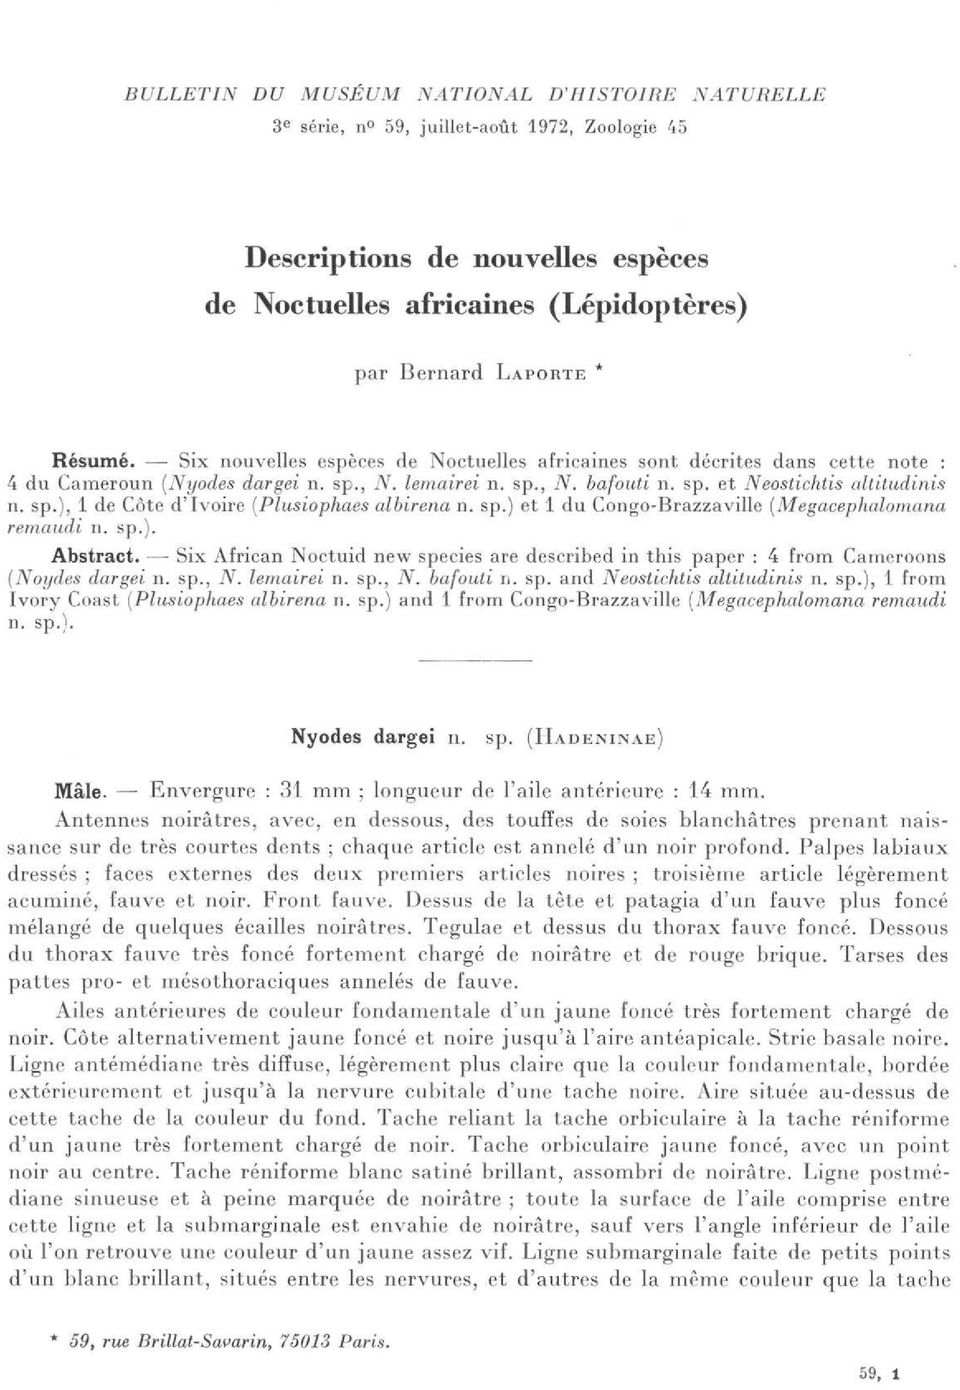 sp.) et 1 du Congo-Brazzaville (Megacephalomana remaudi n. sp.). Abstract. Six African Noctuid new species are described in this paper : 4 from Cameroons (Noydes dargei n. sp., N. lemairei n. sp., TV.